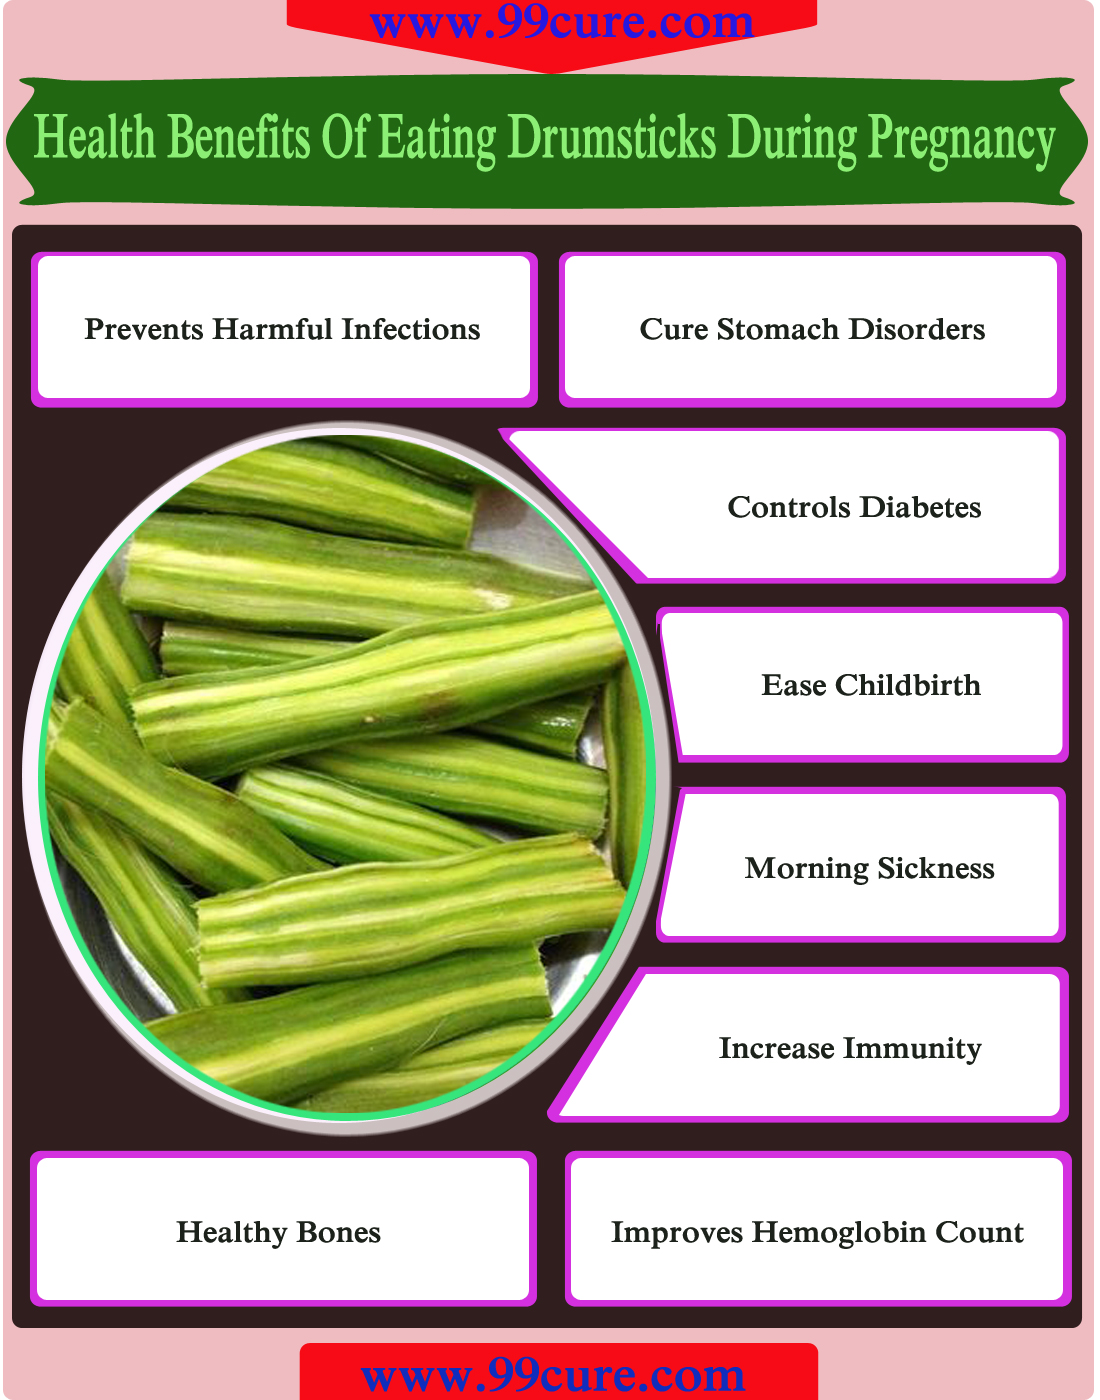 Health Benefits Of Eating Drumsticks During Pregnancy